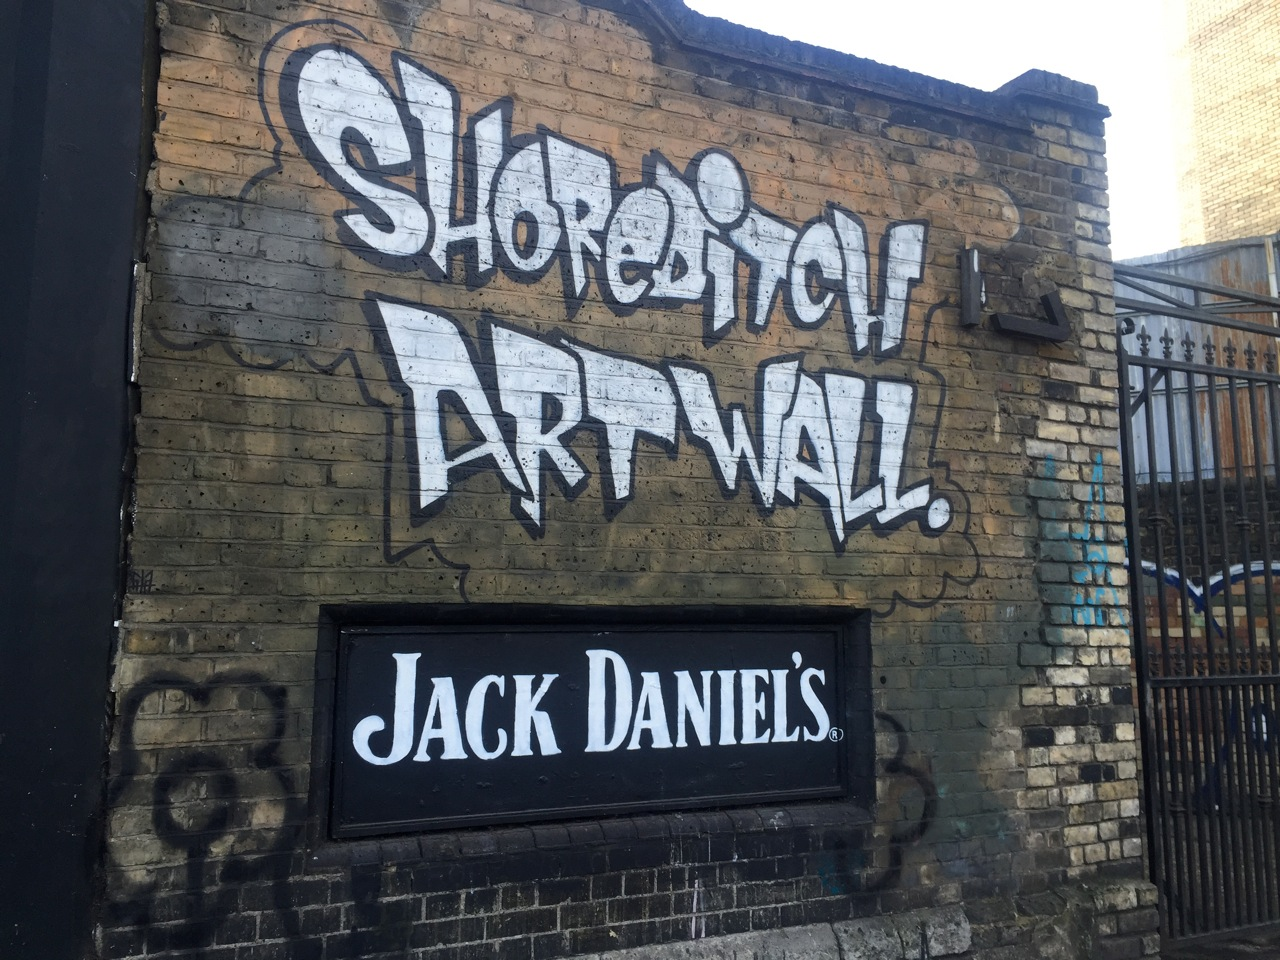 Jack Daniels at the Shoreditch Art Wall